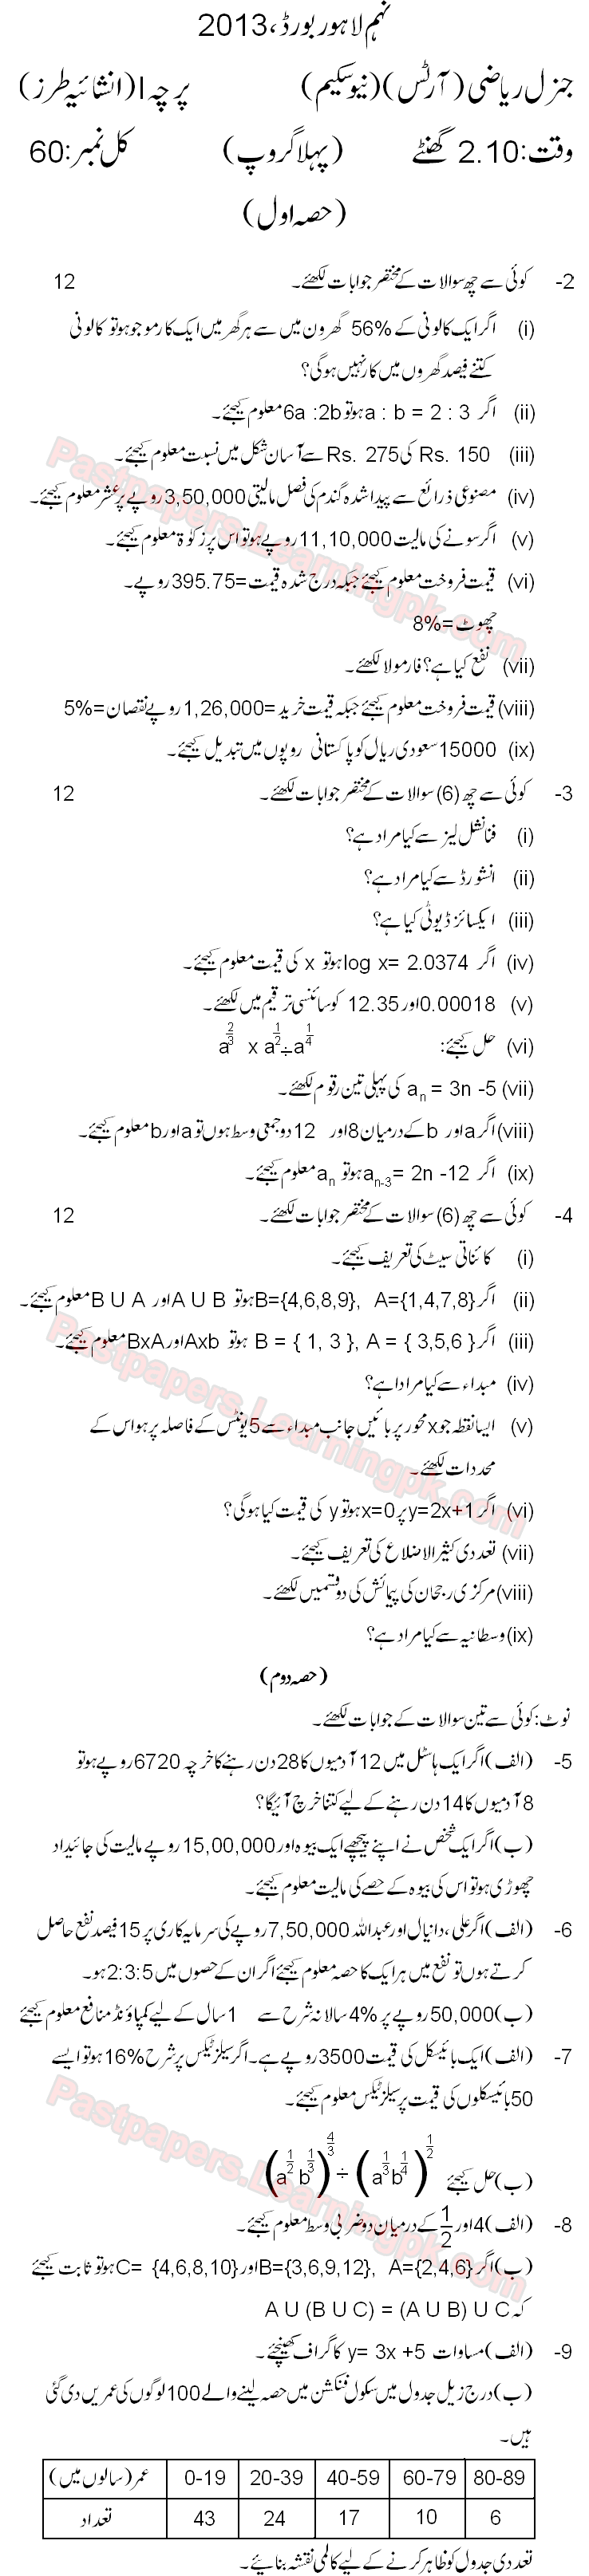 Lahore Board 2013 9th Class Math Past Paper 5 Year Old Guess